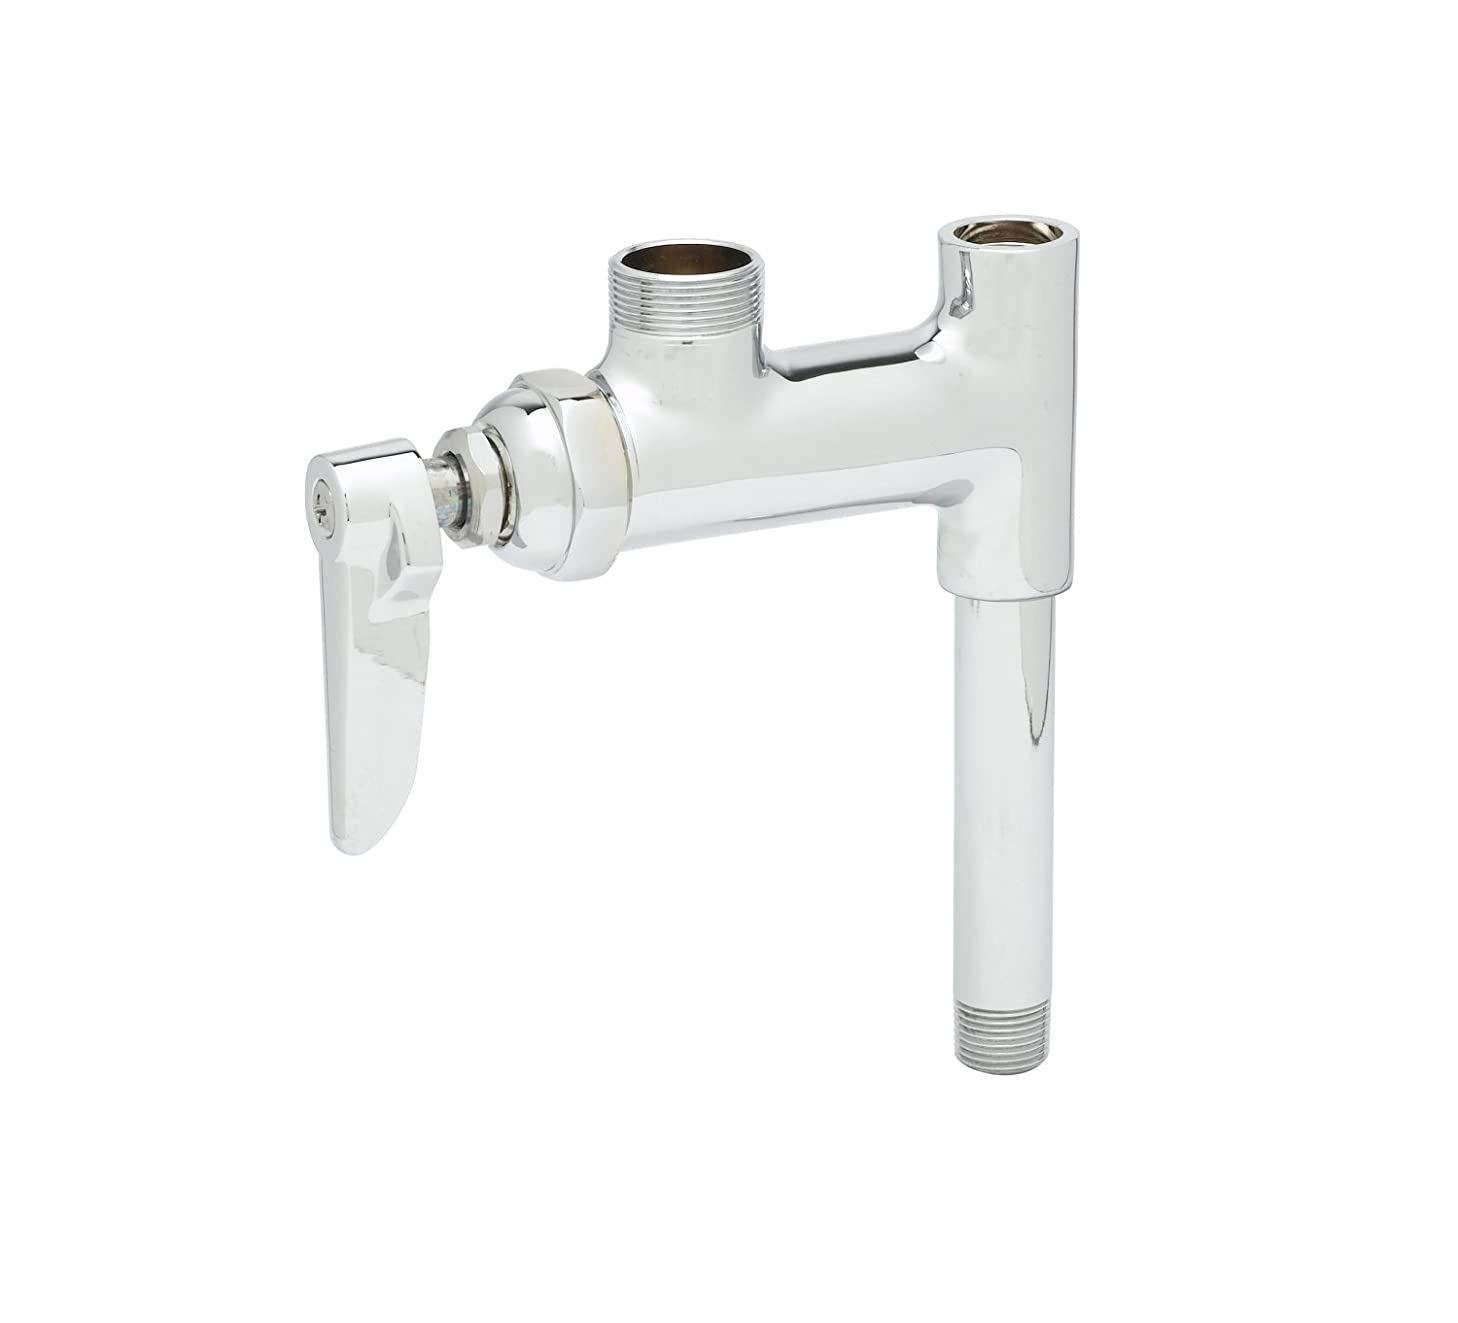 T&S Brass B-0155-05LN Add-On Faucet Less Nozzle with Lever Handle and 5-Inch Nipple